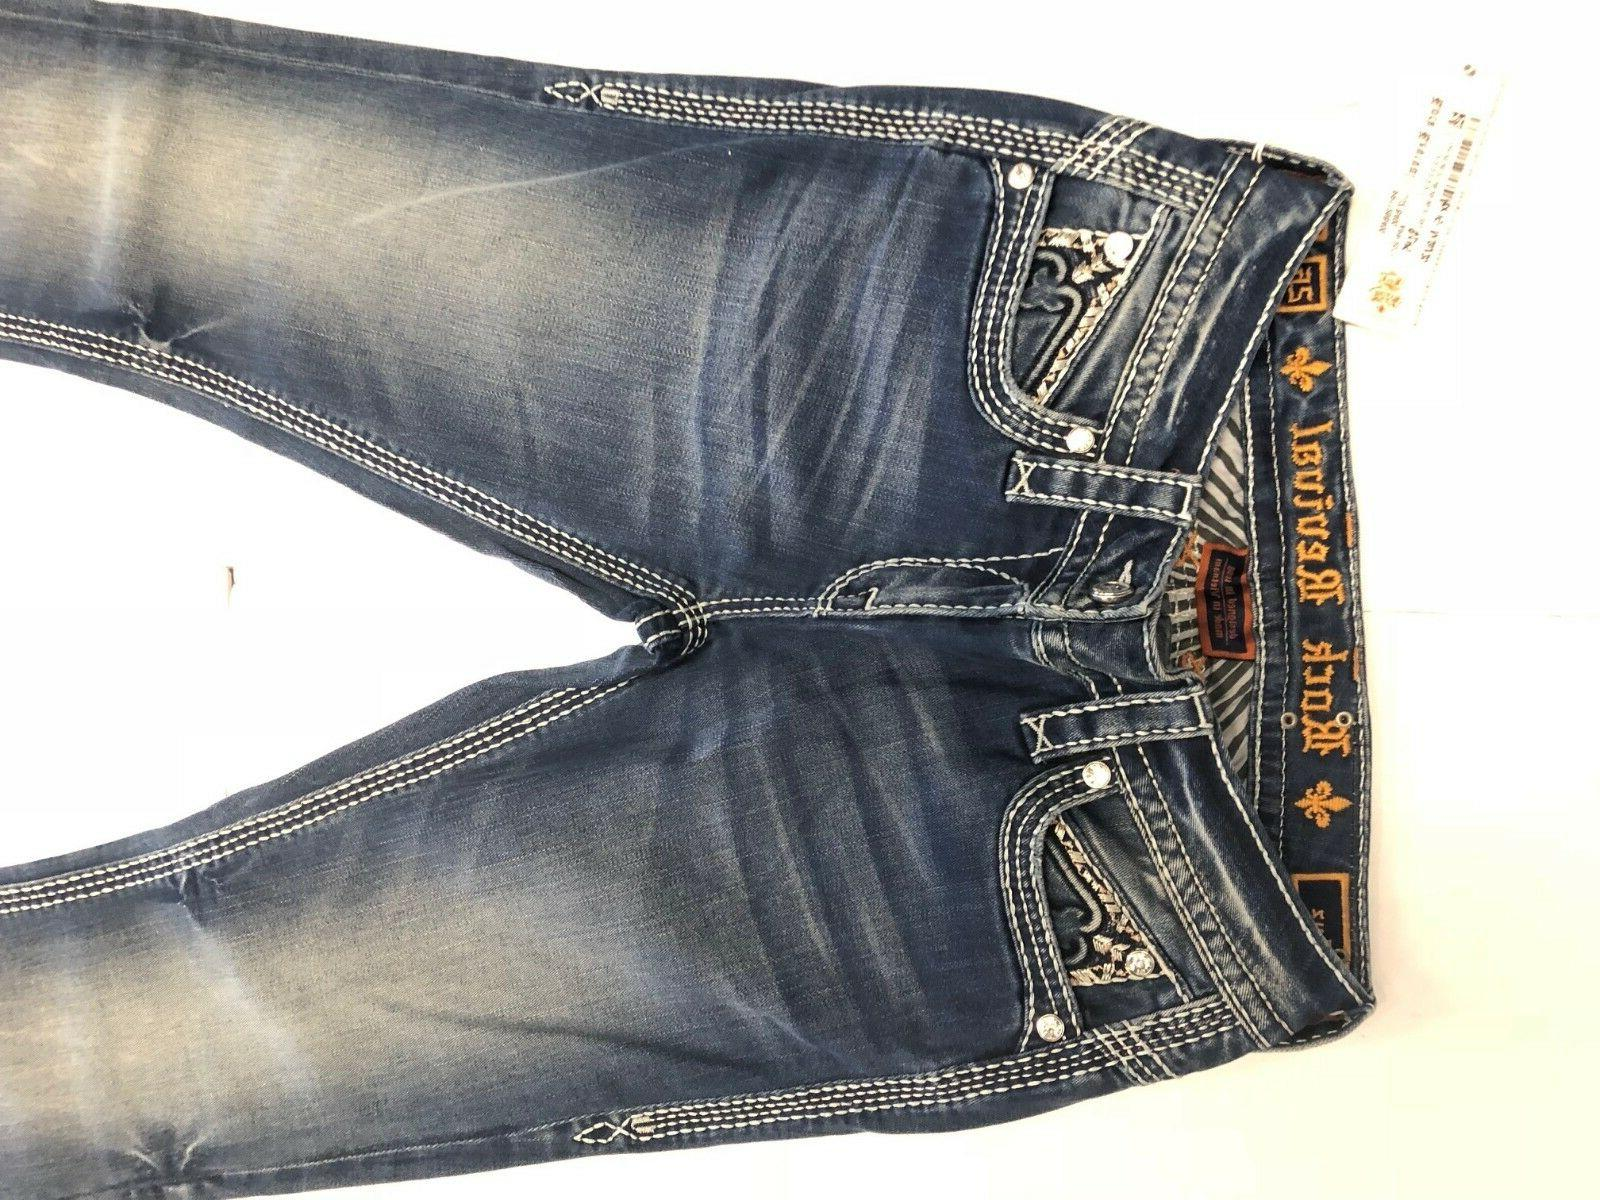 NWT Women ROCK REVIVAL JEANS LUZ 225$ LIGHT SIZE 26